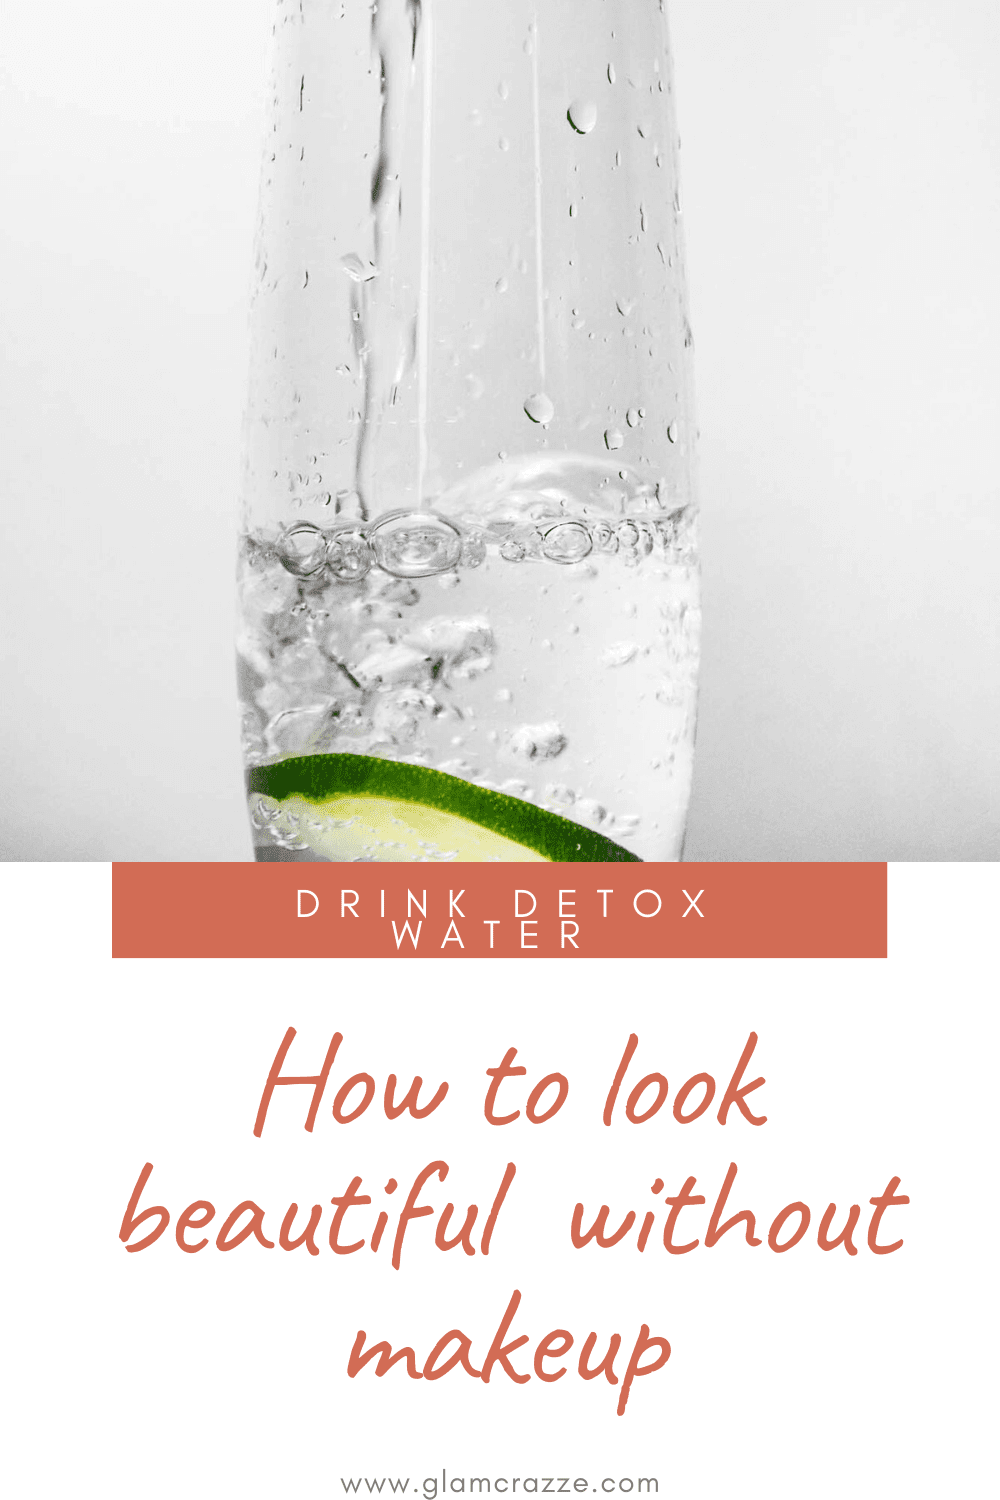 How to look beautiful woman makeup and with healthy diet